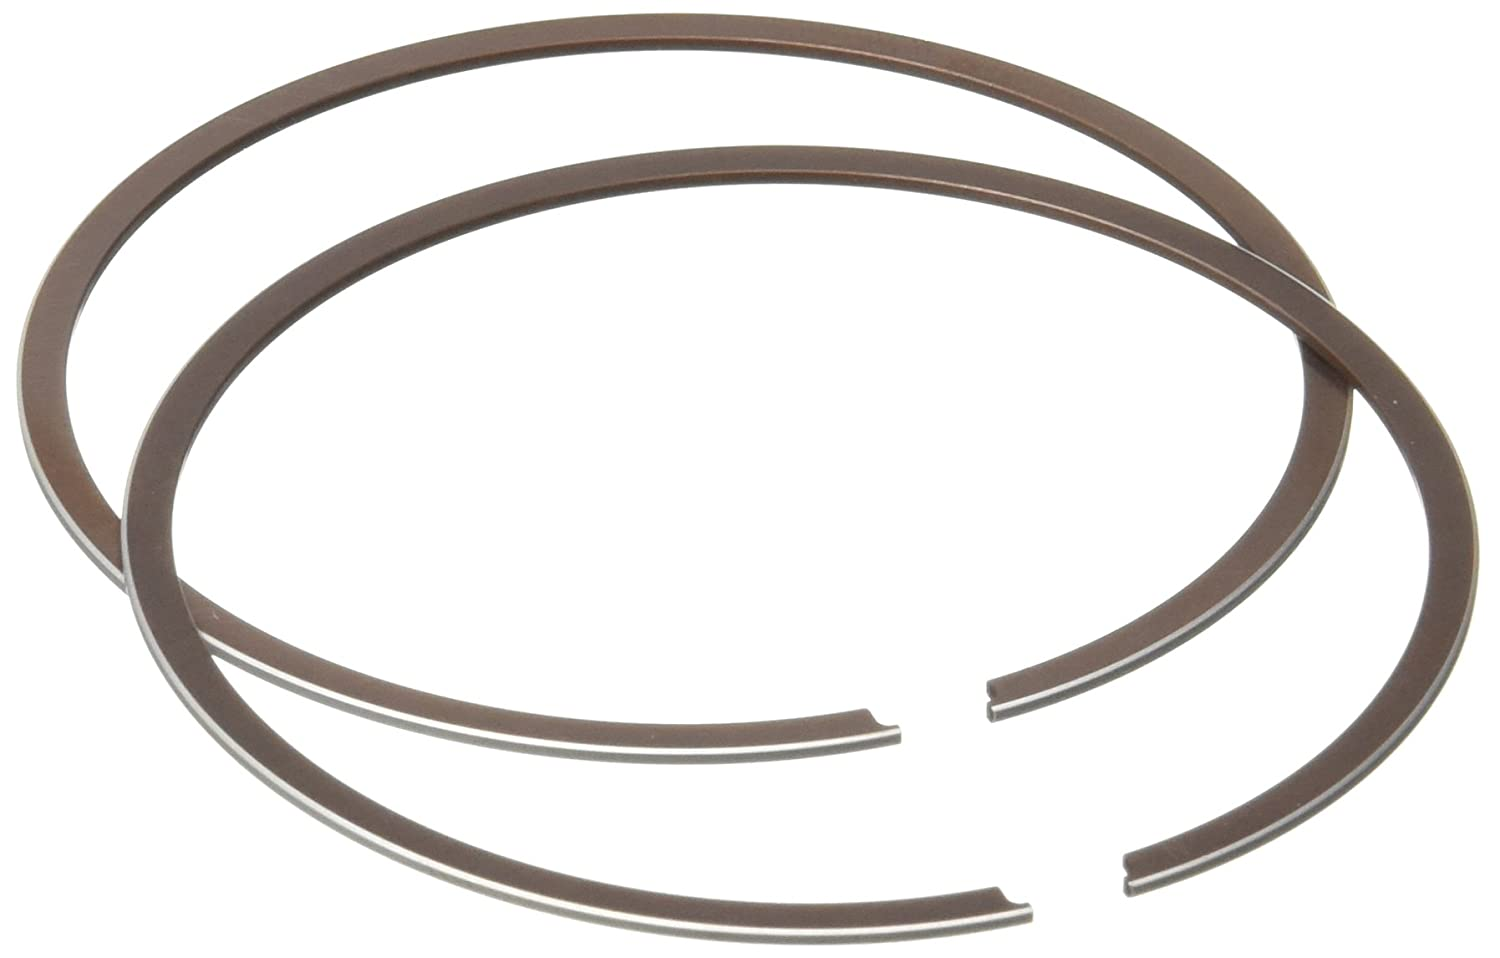 Wiseco 2598CD Ring Set for 66.00mm Cylinder Bore